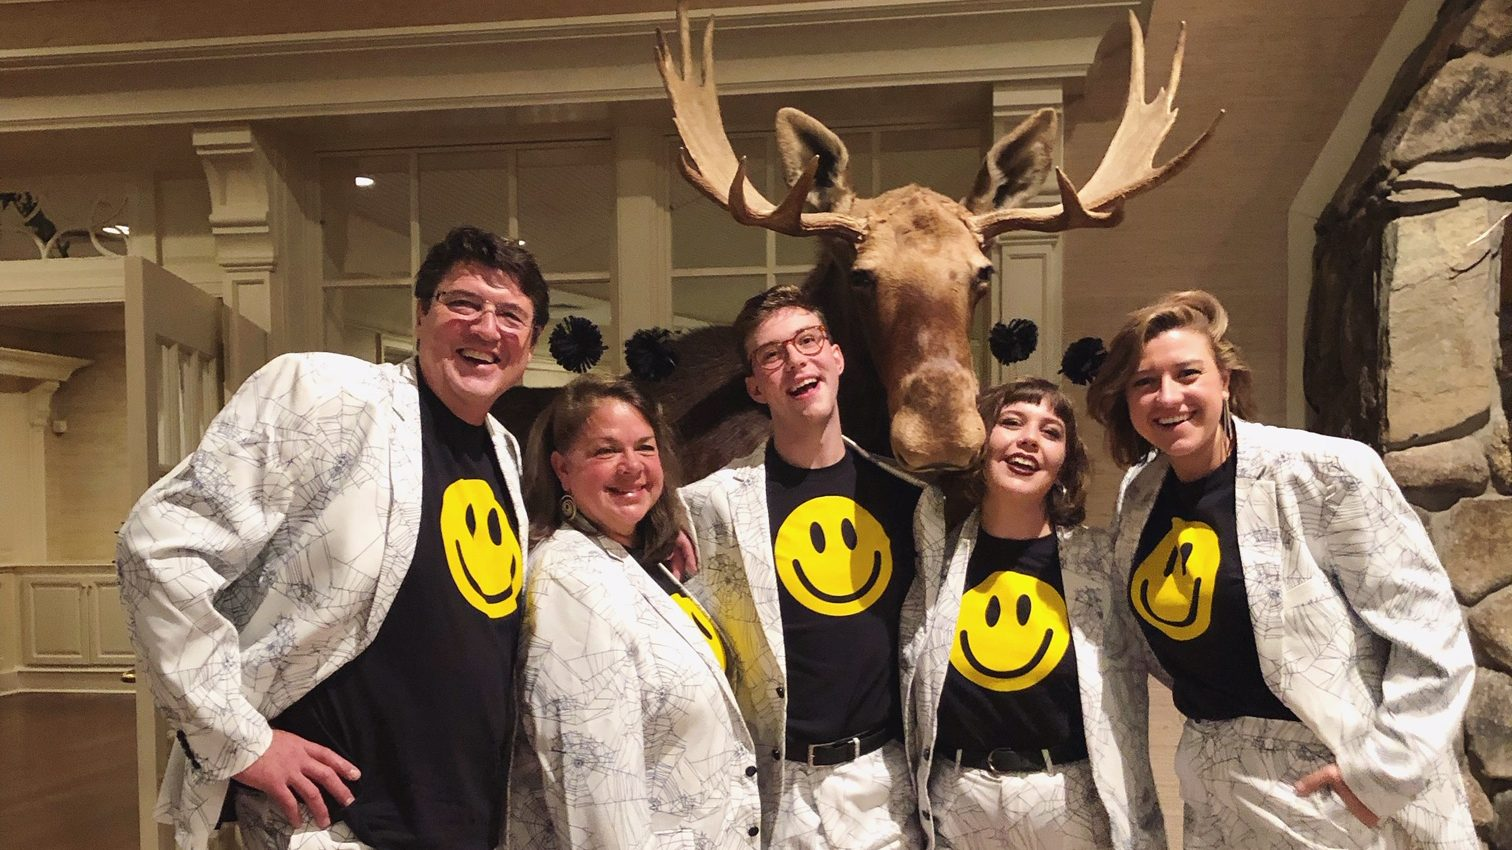 Image: The entire EWC team wearing spiderweb printed blazers, and a smiley face shirt underneath. The team is posing with a taxidermy moose.